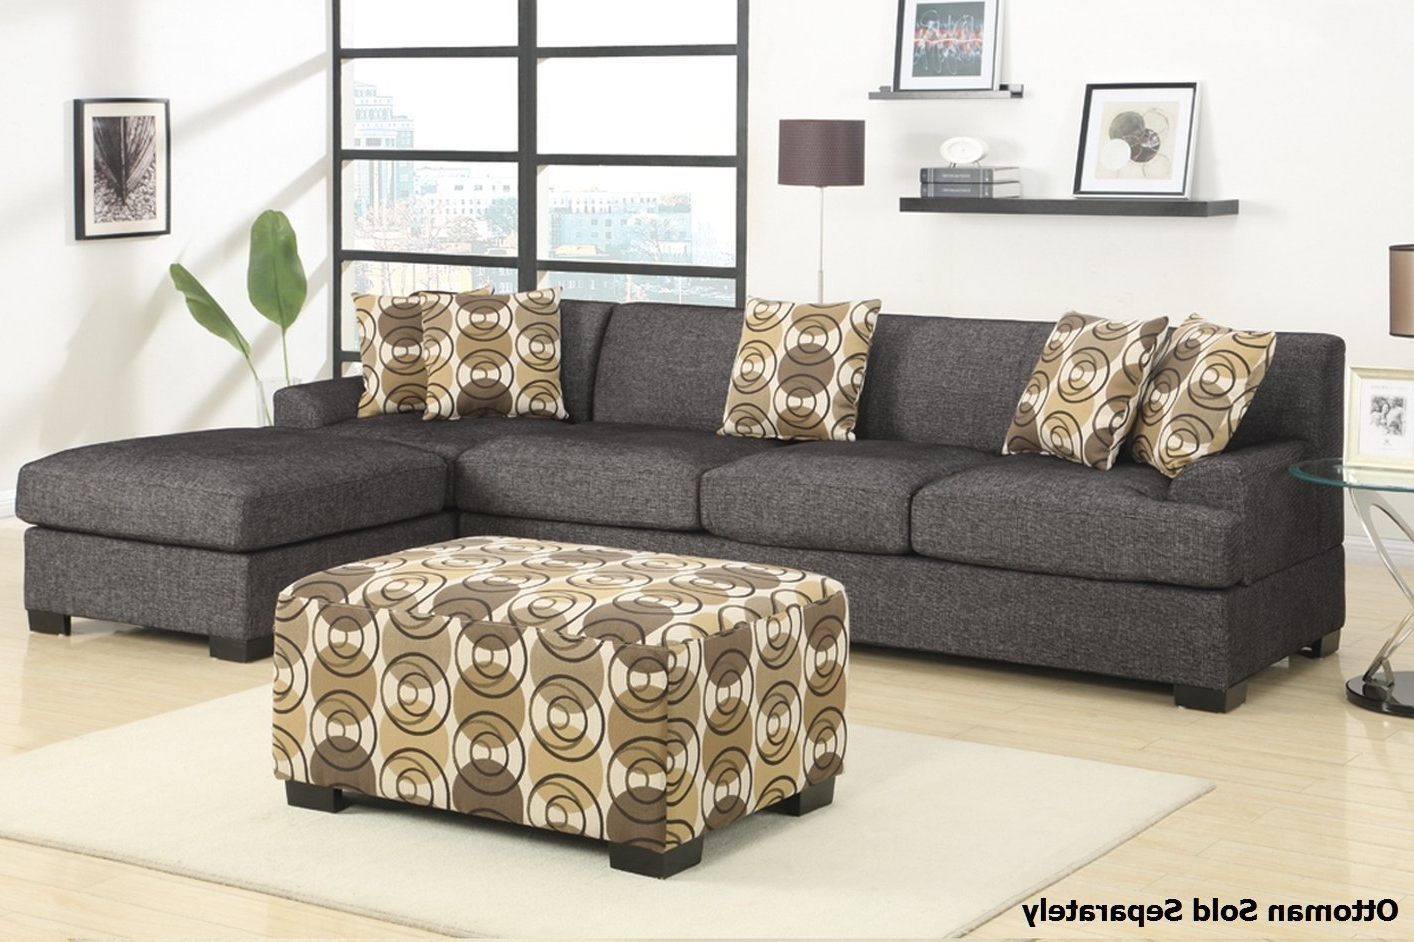 Montreal Sectional Sofas Within Well Known Montreal Iii Grey Fabric Sectional Sofa – Steal A Sofa Furniture (Gallery 14 of 20)